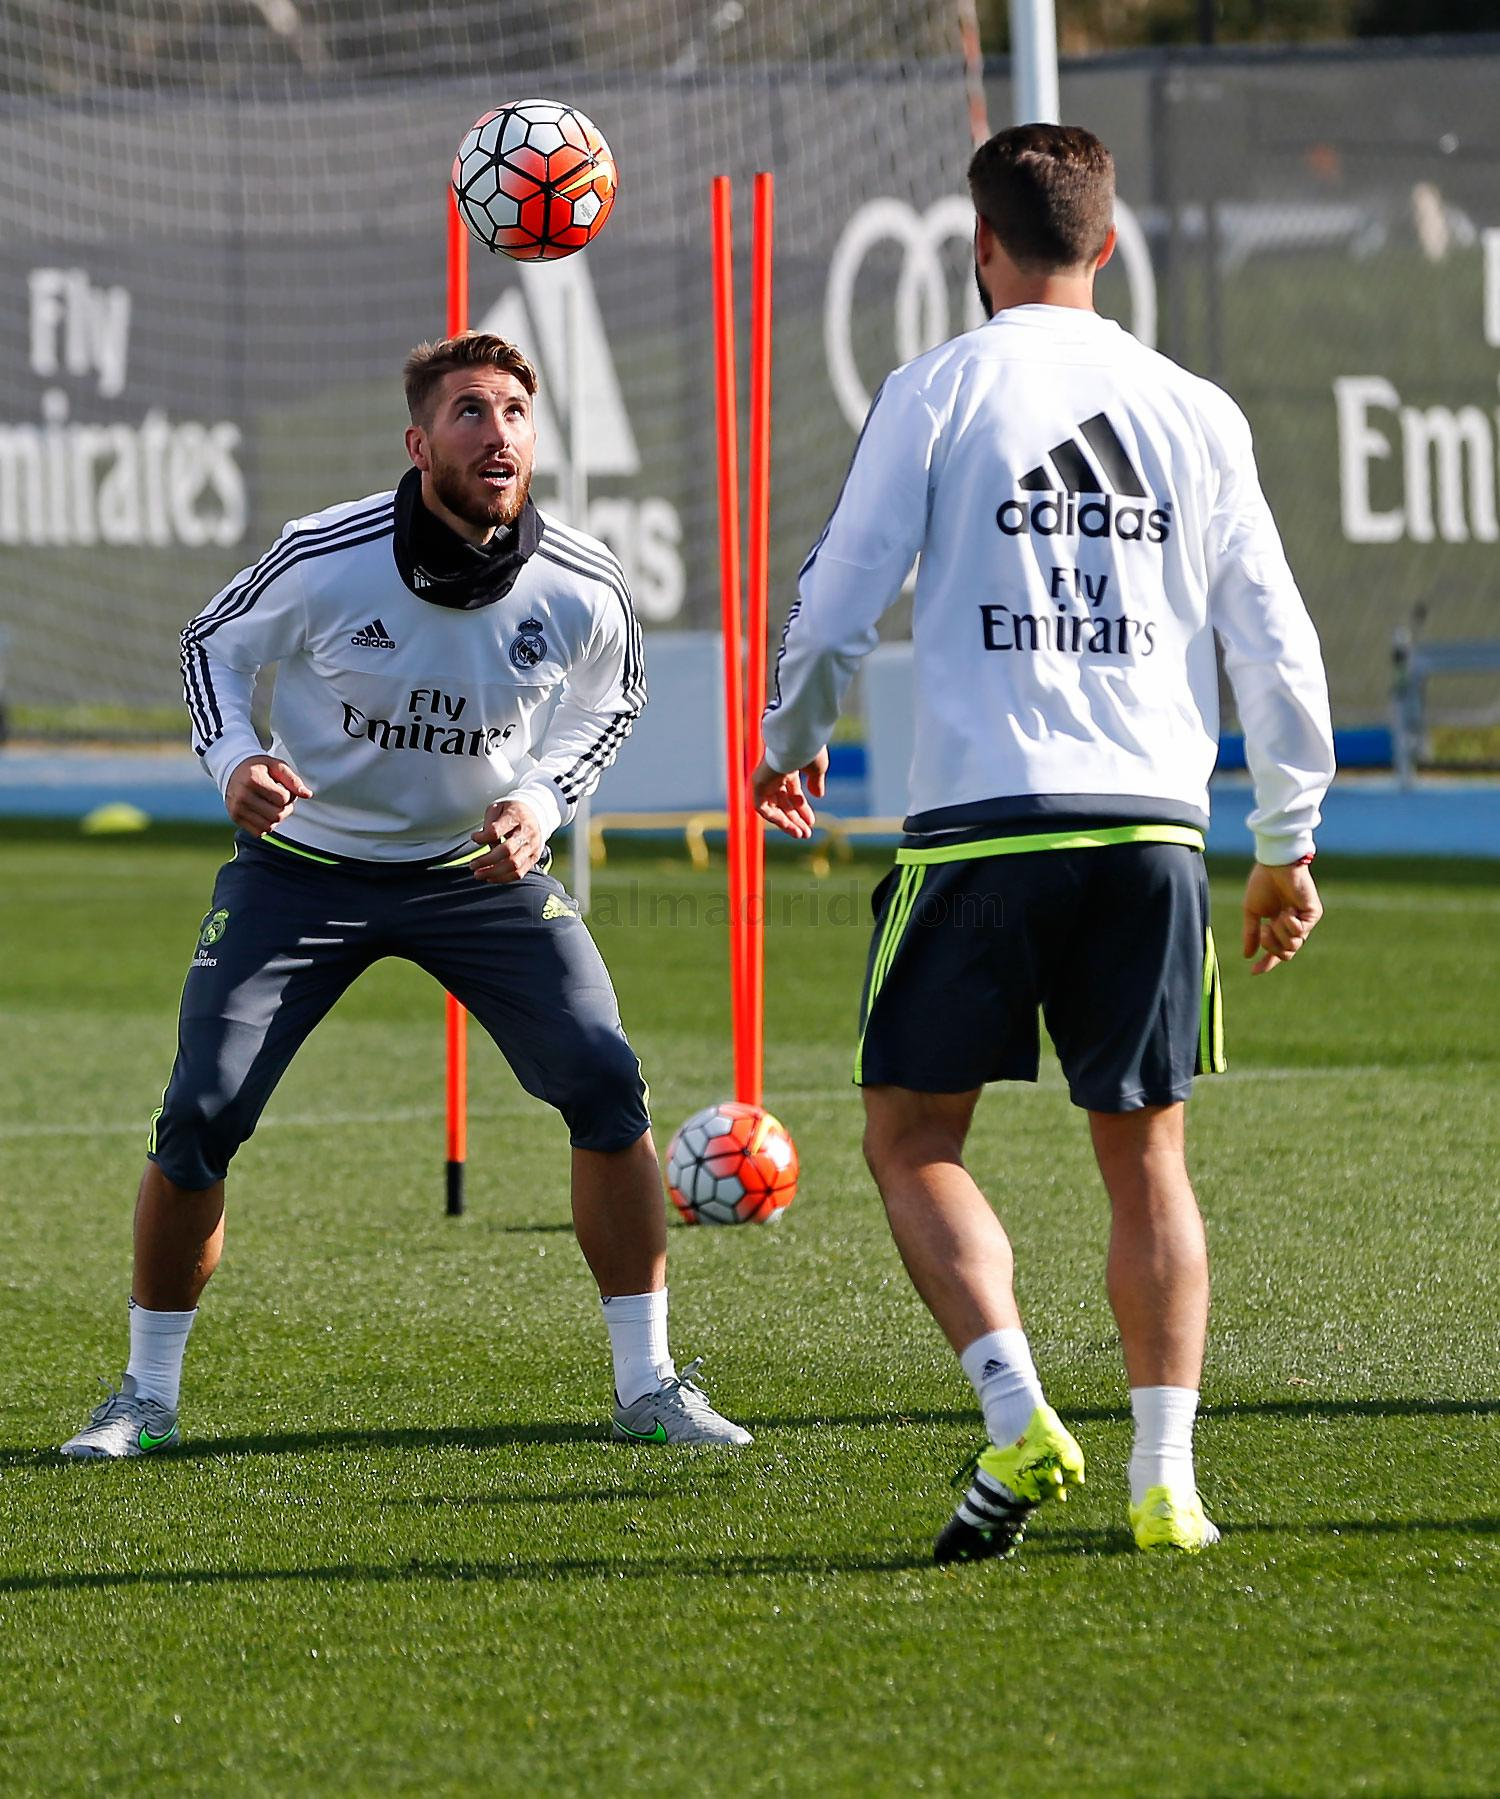 Real Madrid - Entrenamiento del Real Madrid - 16-07-2015